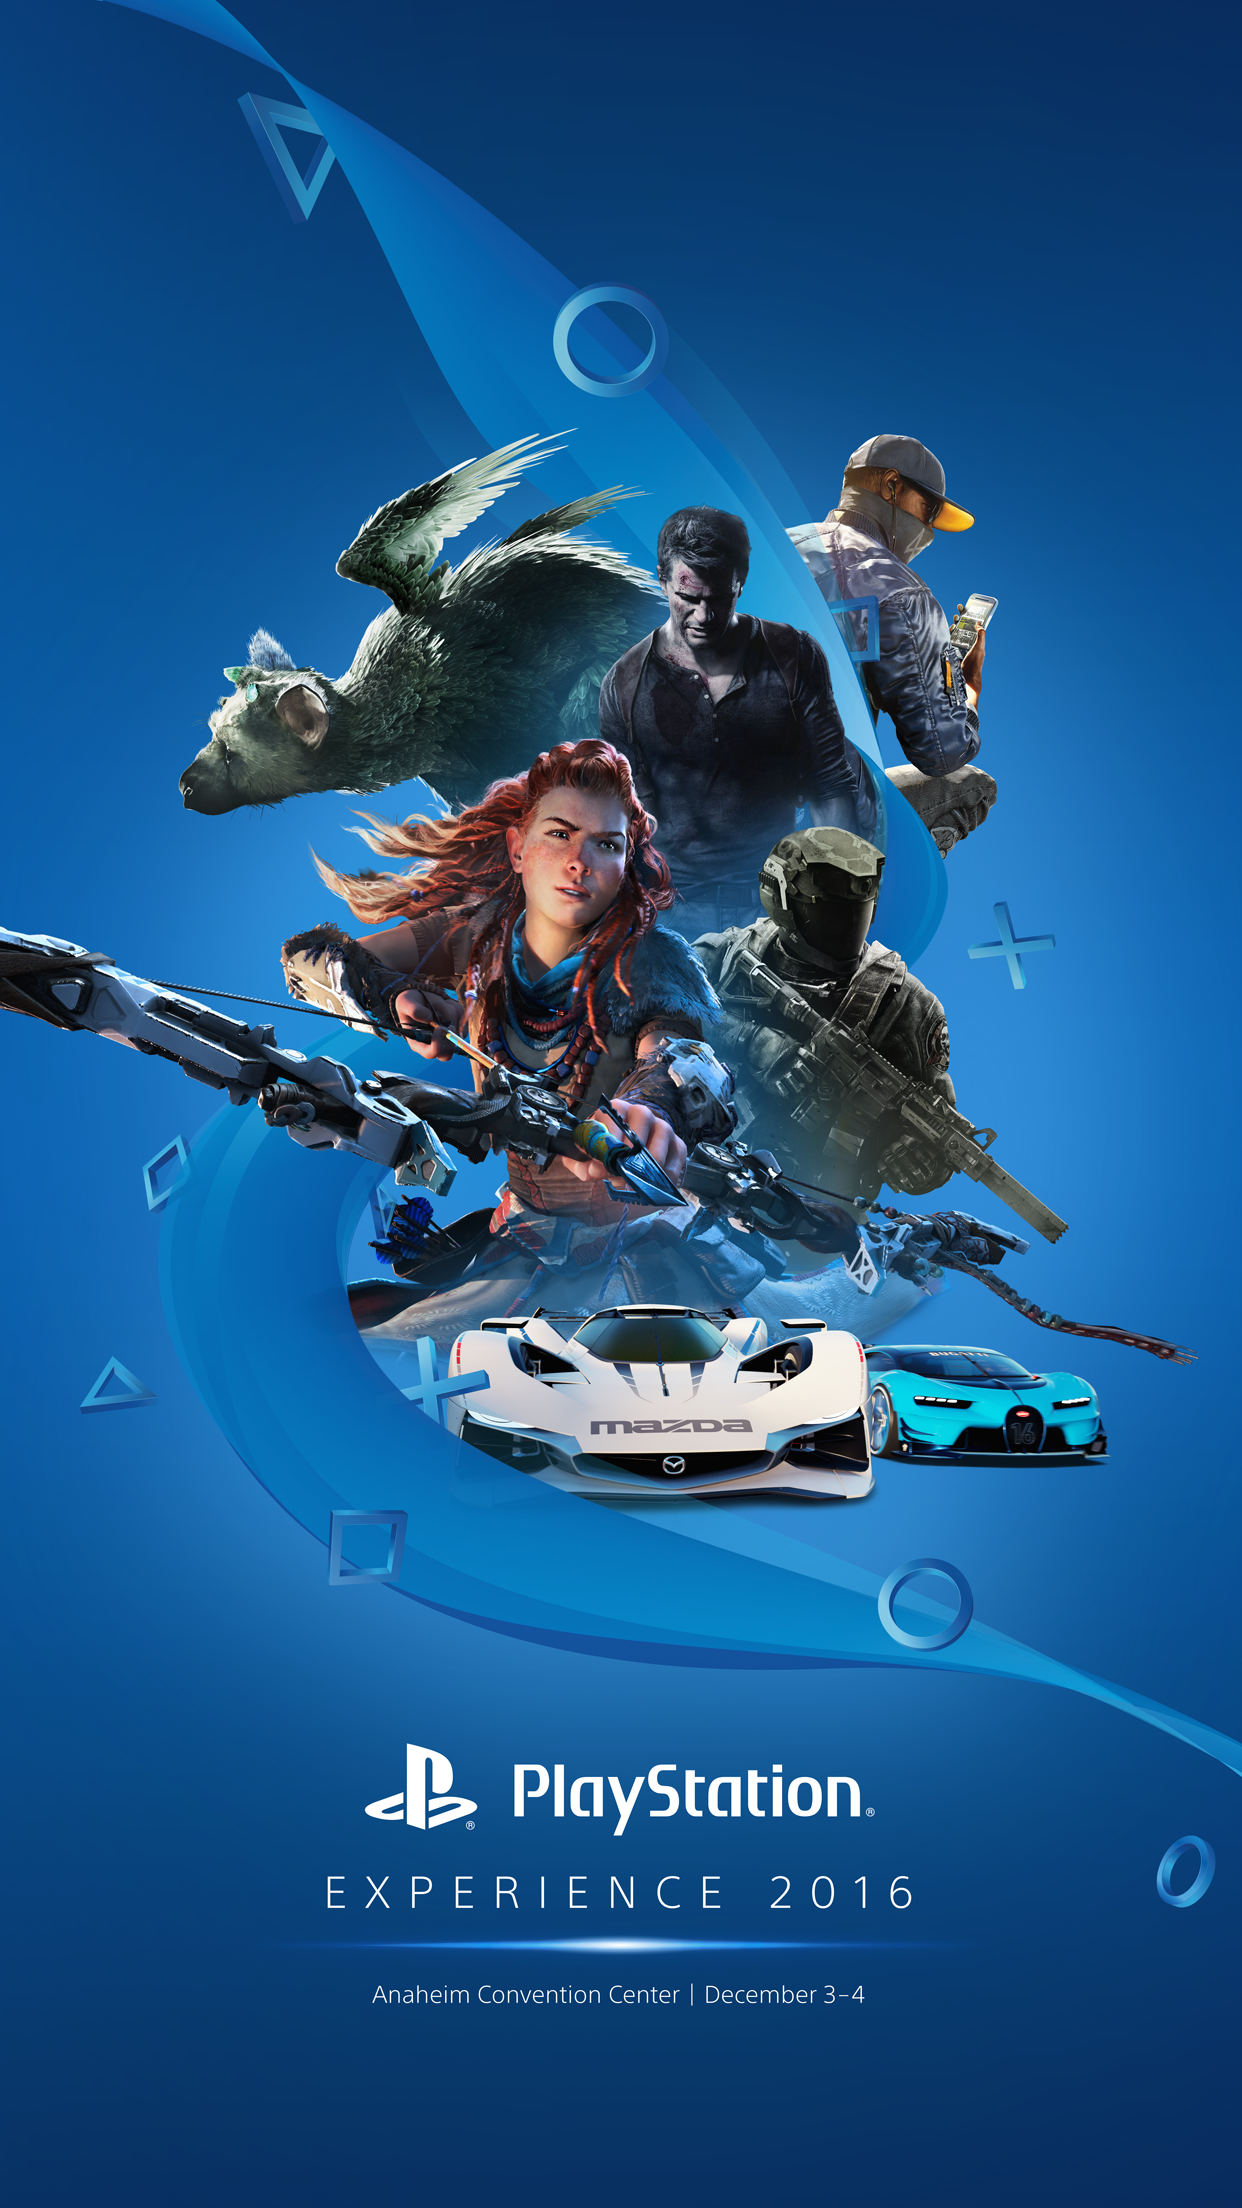 Playstation Contact Psx 2016 Official Phone Wallpaper Image Playstation4